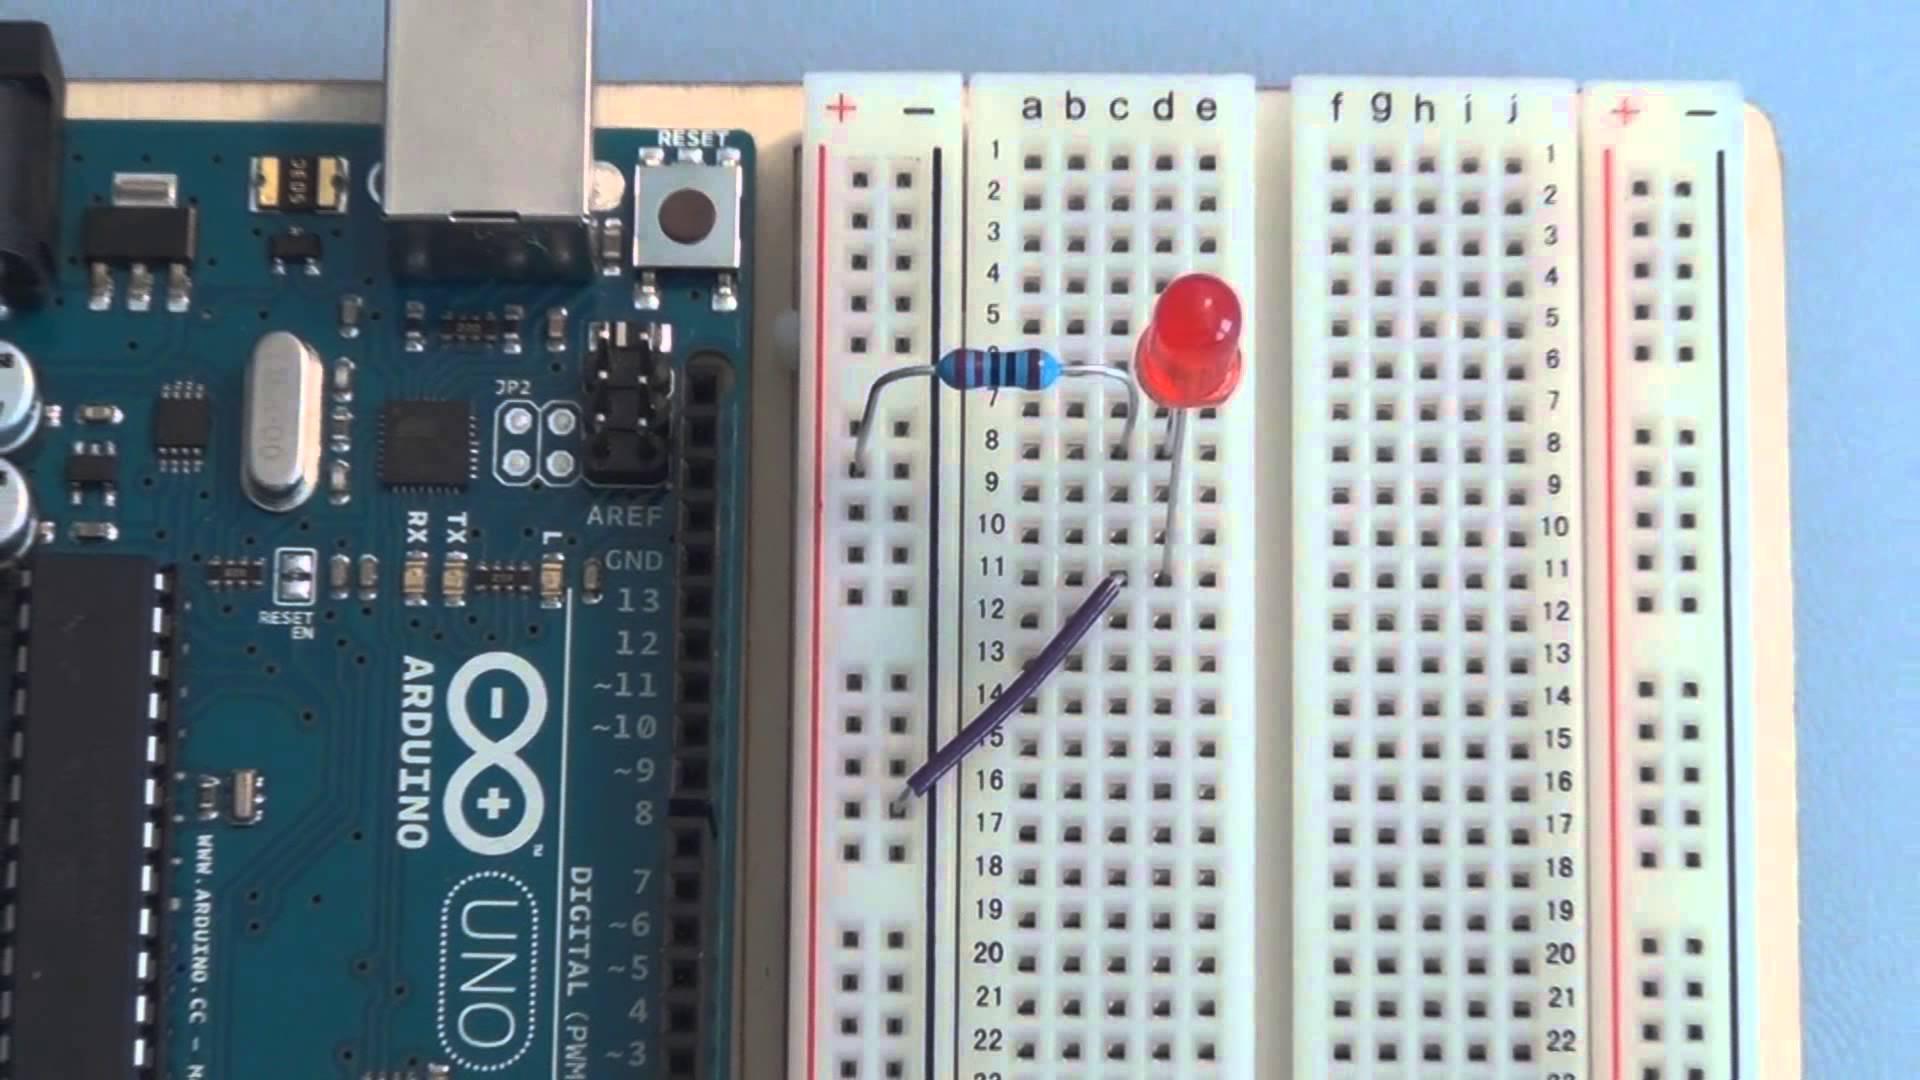 The influence of arduinos in new product development iterate